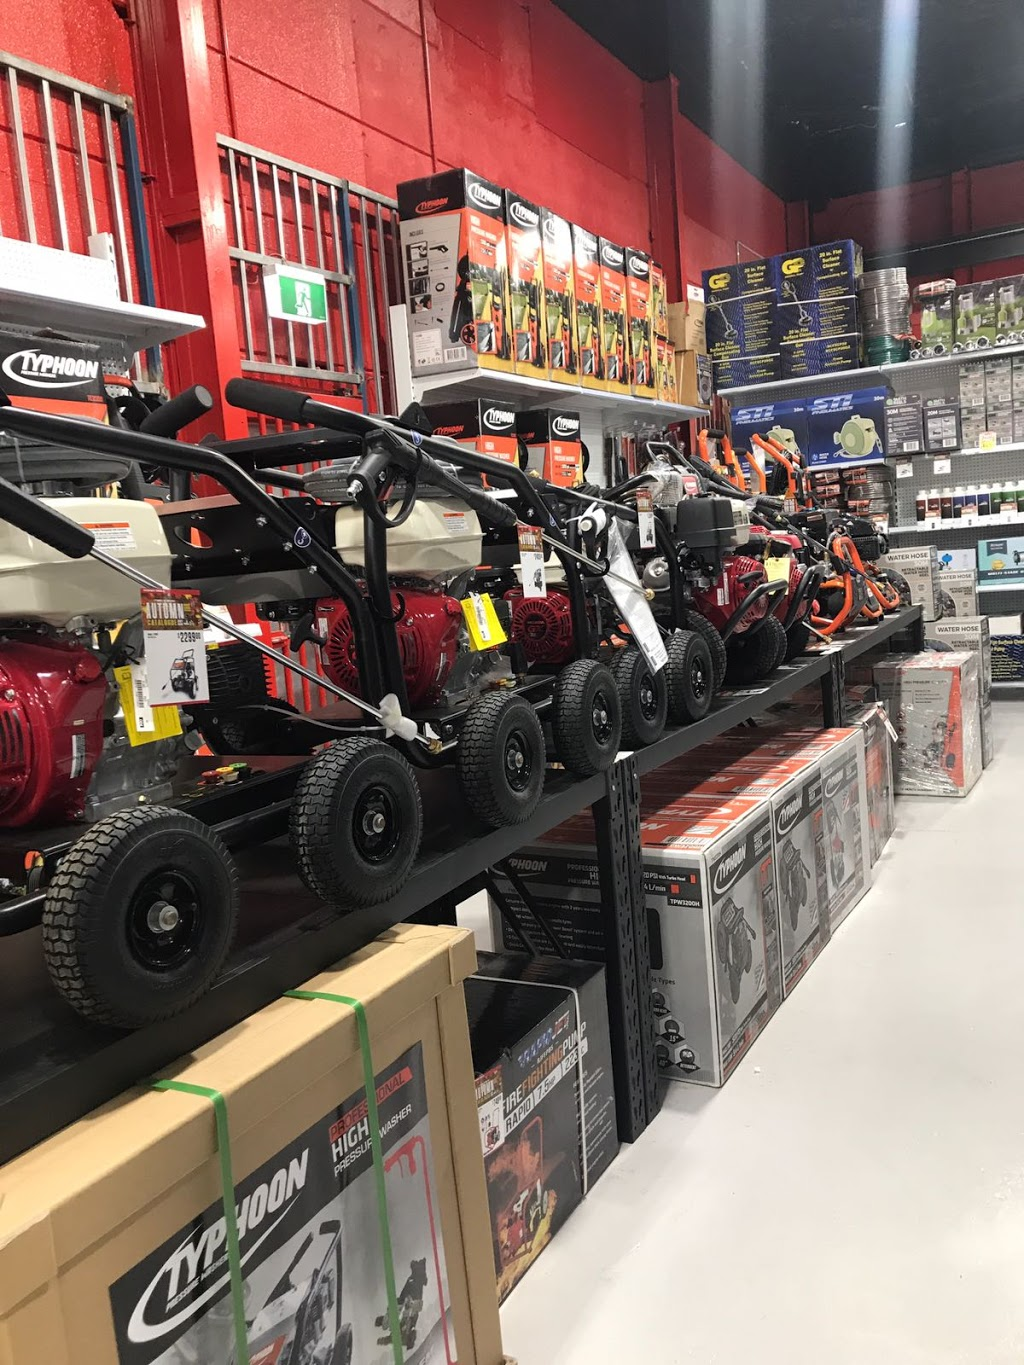 Sydney Tools Gosford - Central Coast | hardware store | 1 Yandina Rd, West Gosford NSW 2250, Australia | 0284162120 OR +61 2 8416 2120